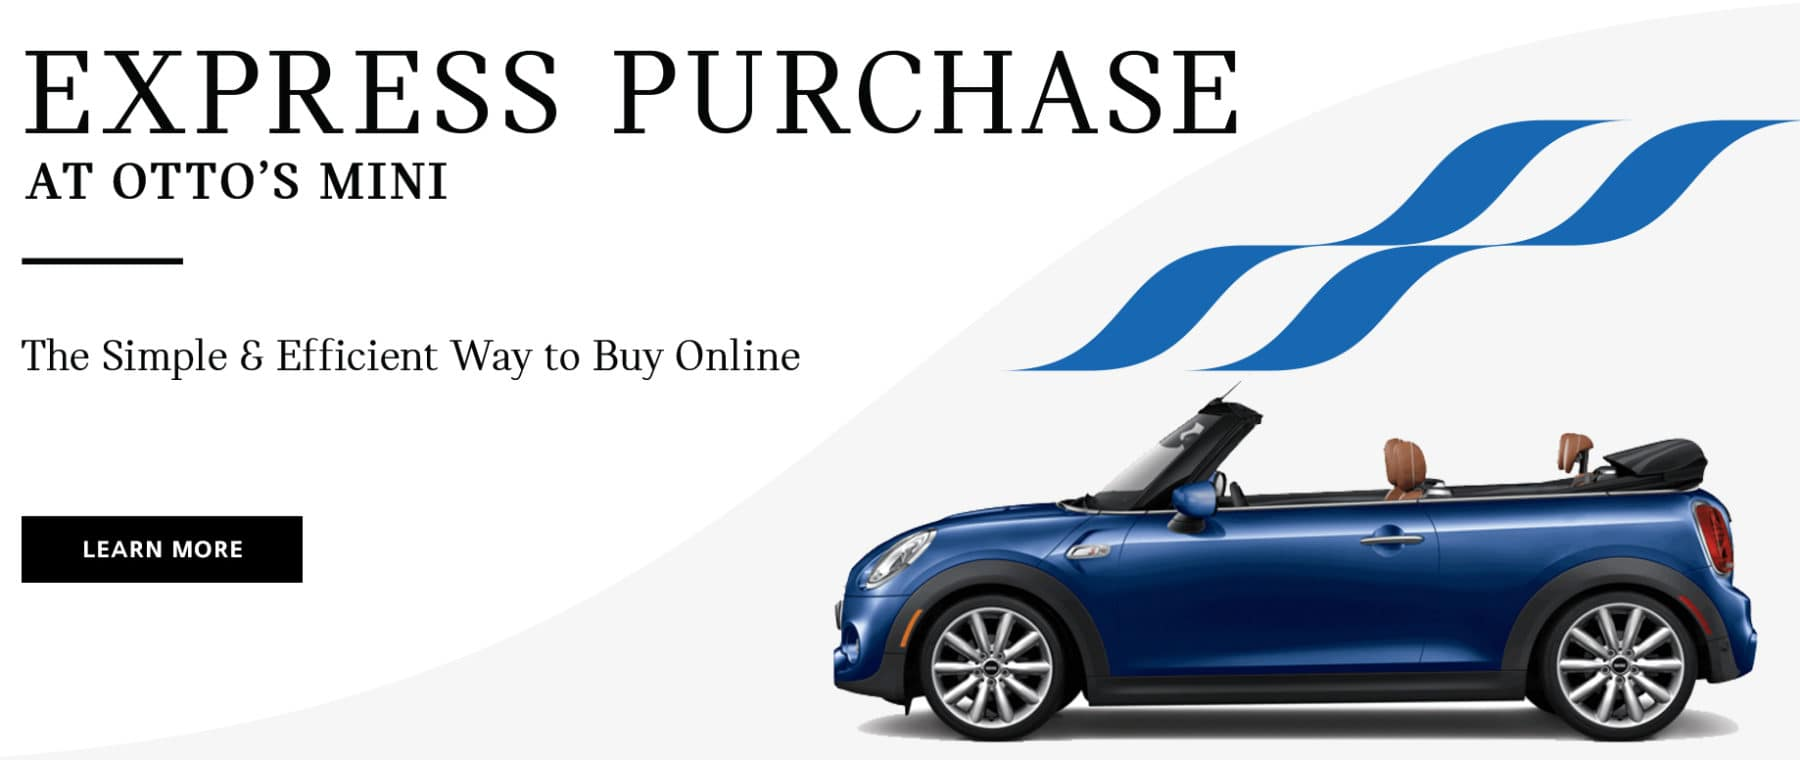 Otto's Express Purchase, the new way to shop for a MINI from home and purchase entirely online!